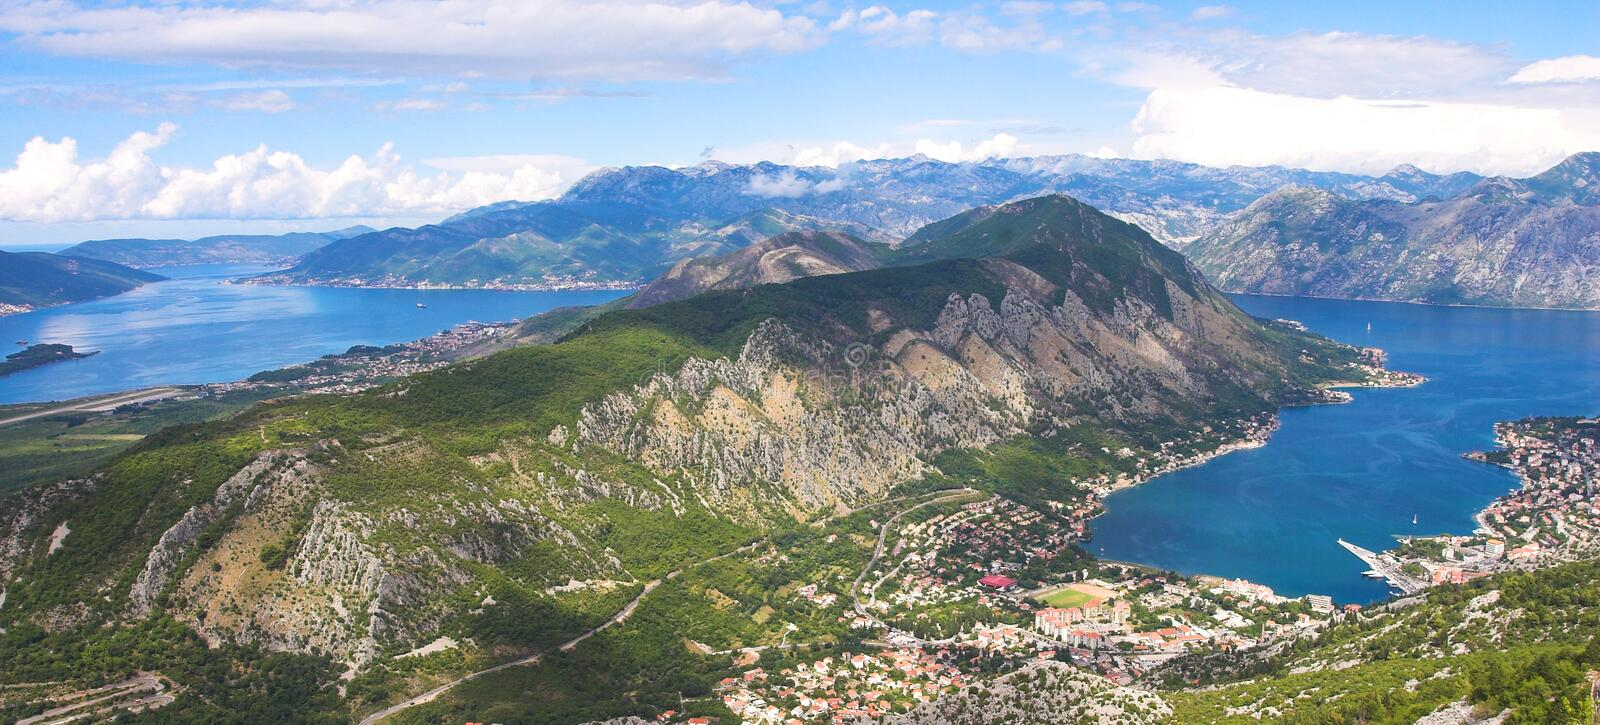 Boka Kotorska bay panorama. From the mountain above it showing also mountains and cities surrounding it royalty free stock image